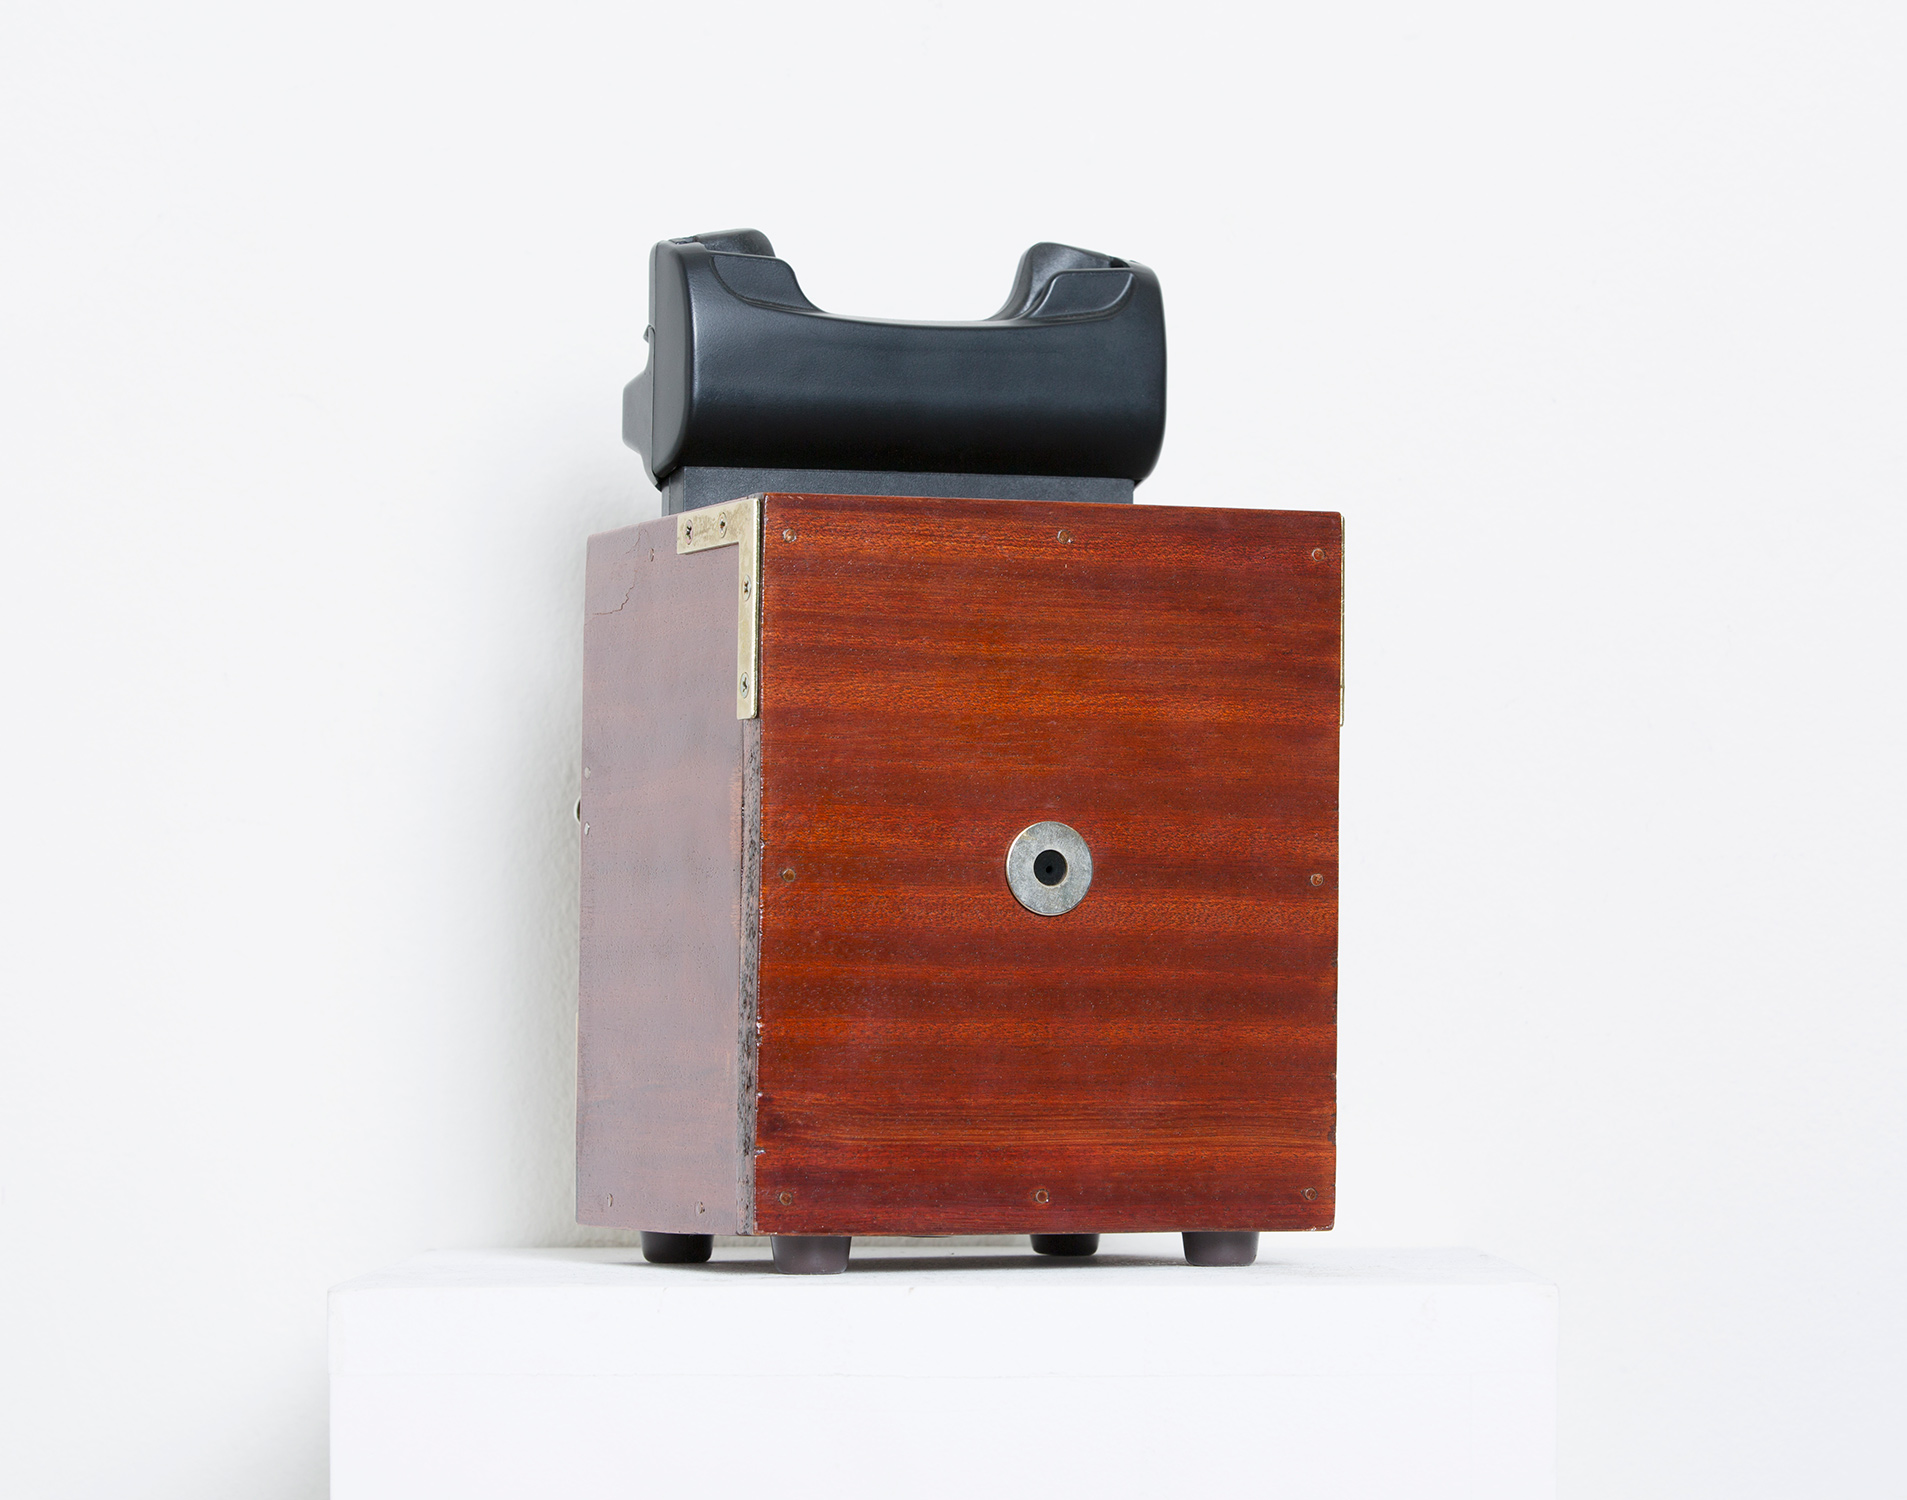 Recine 4x5 Pinhole Camera, 2000 (front)